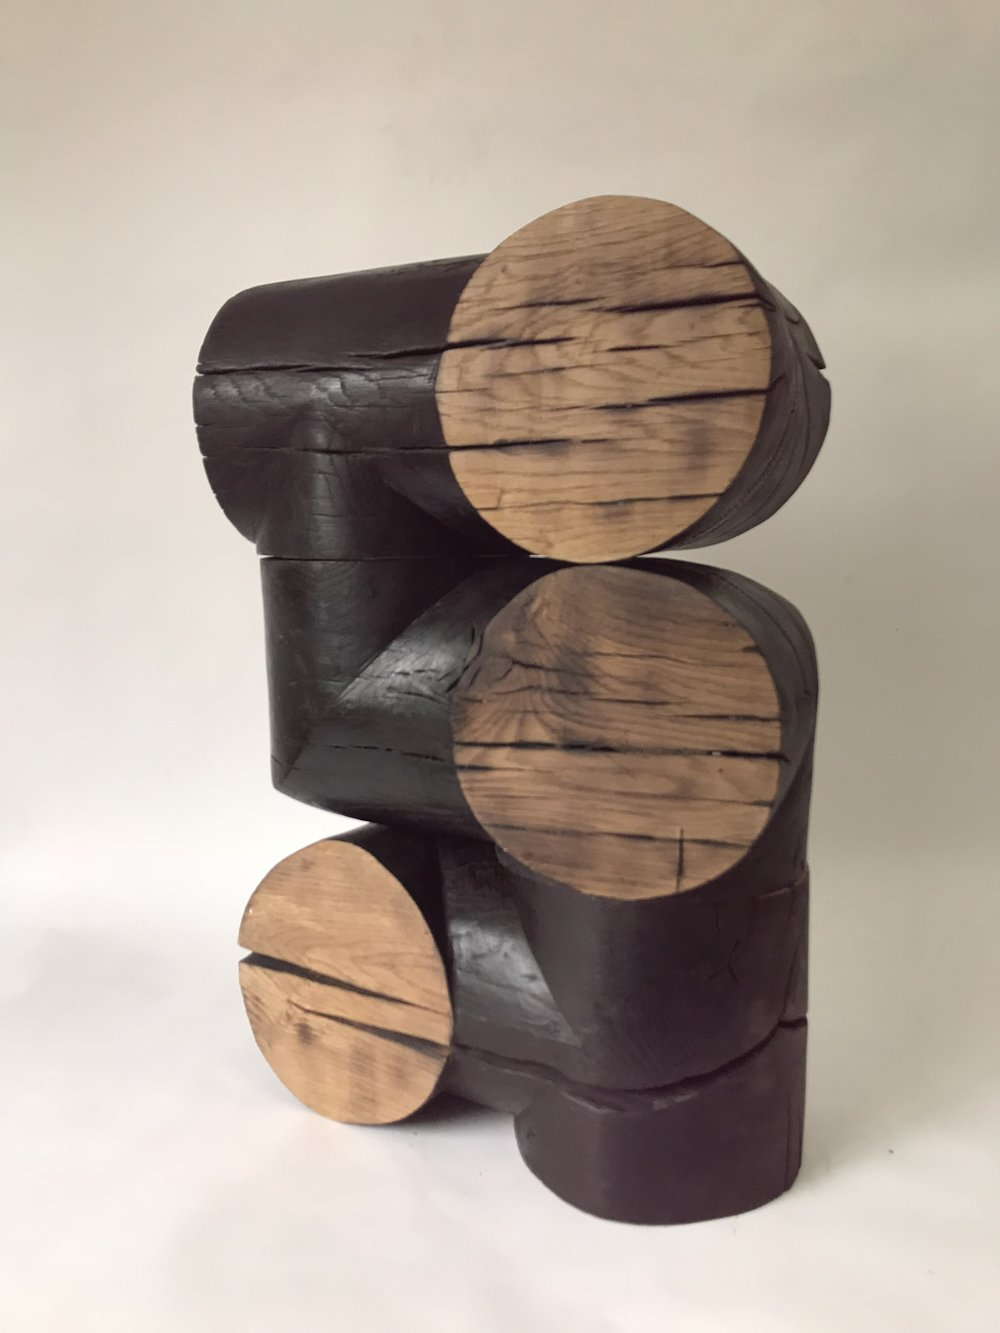 'Abacus III', Burnt wood and wax, 20x20x60cm